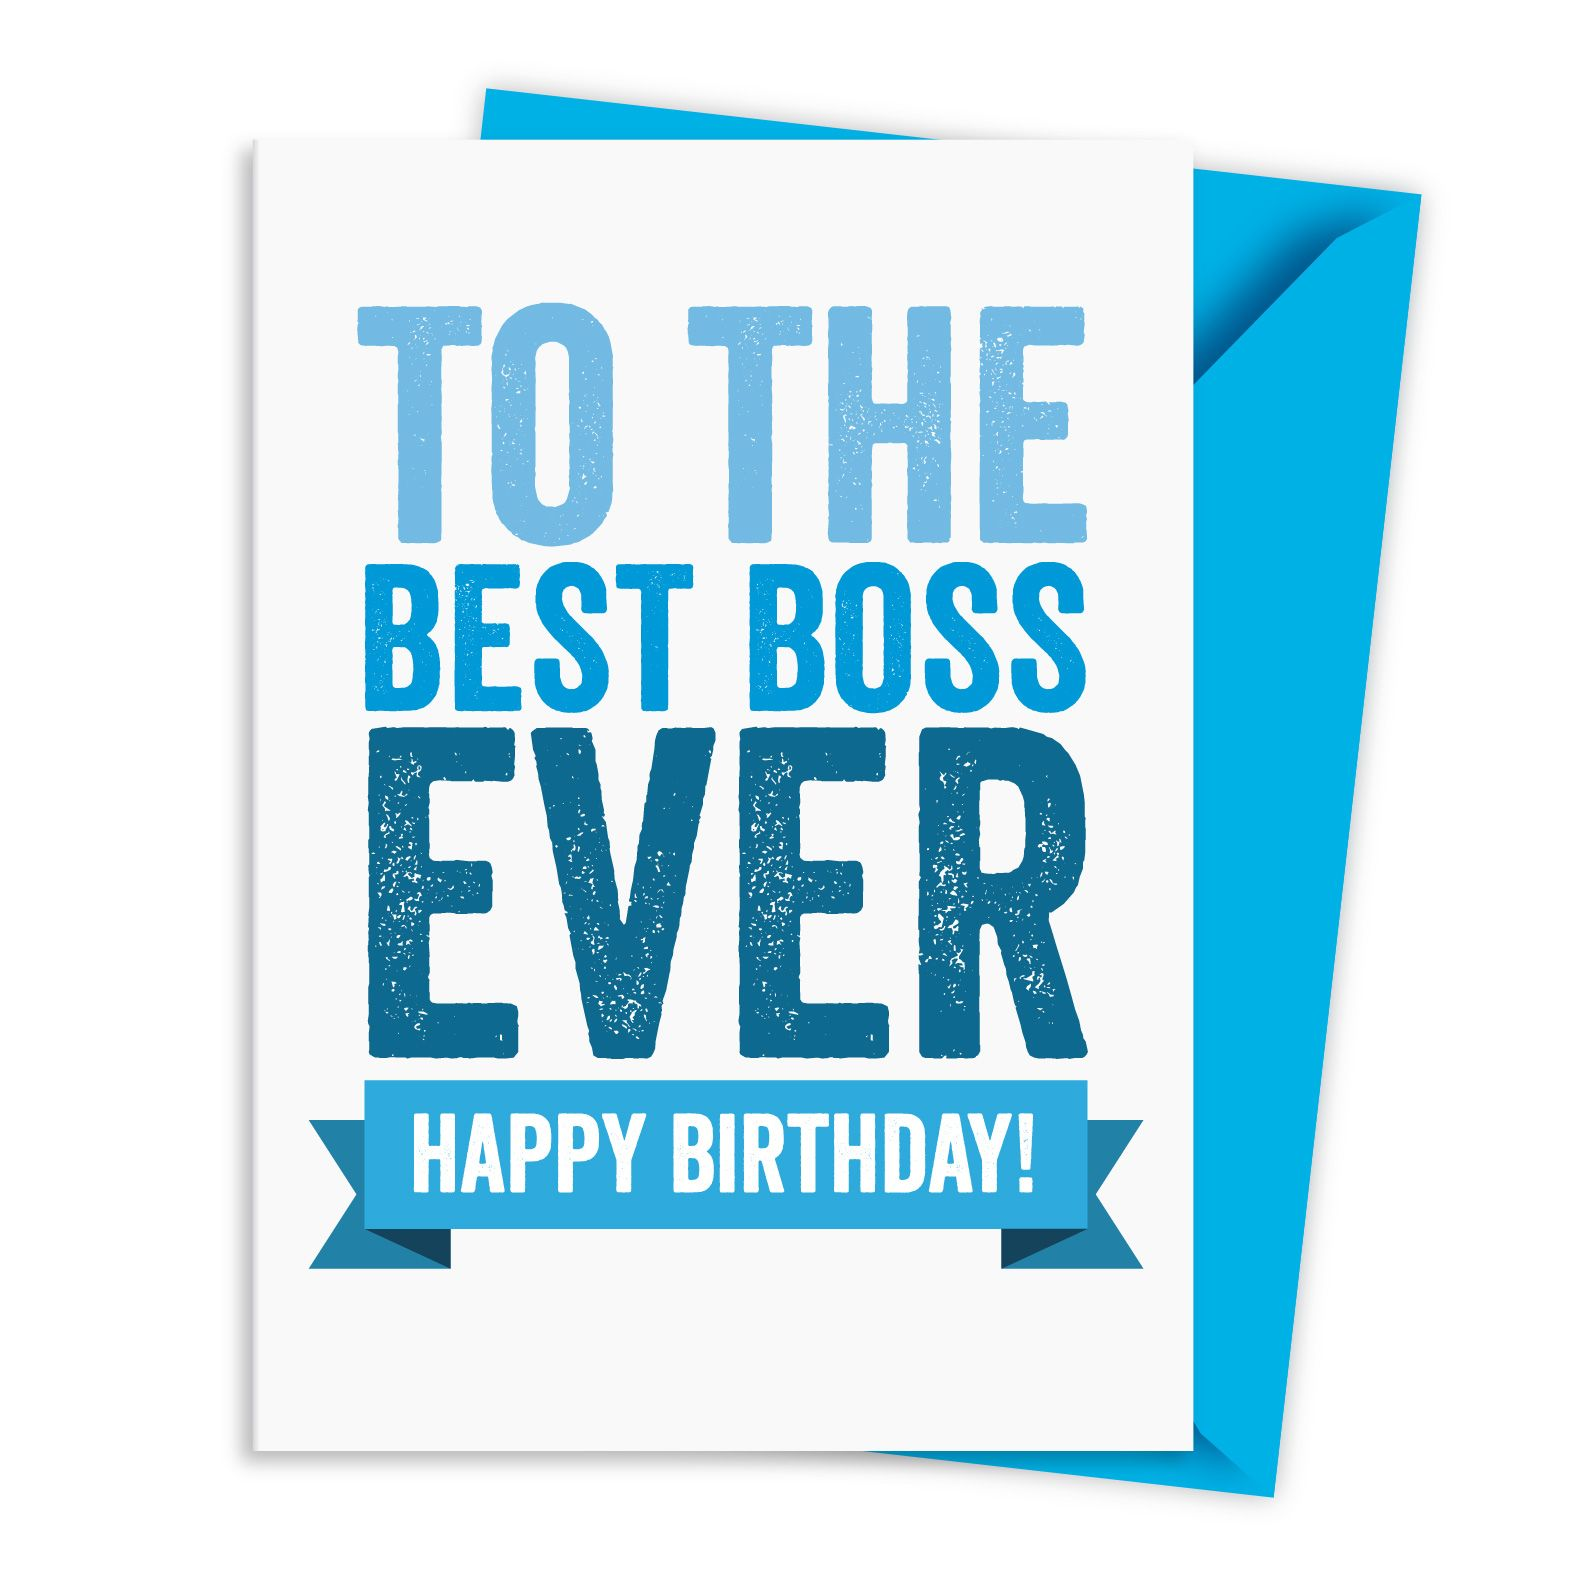 Wish Your Boss A Happy Birthday With Latest Happy Birthday Wishes